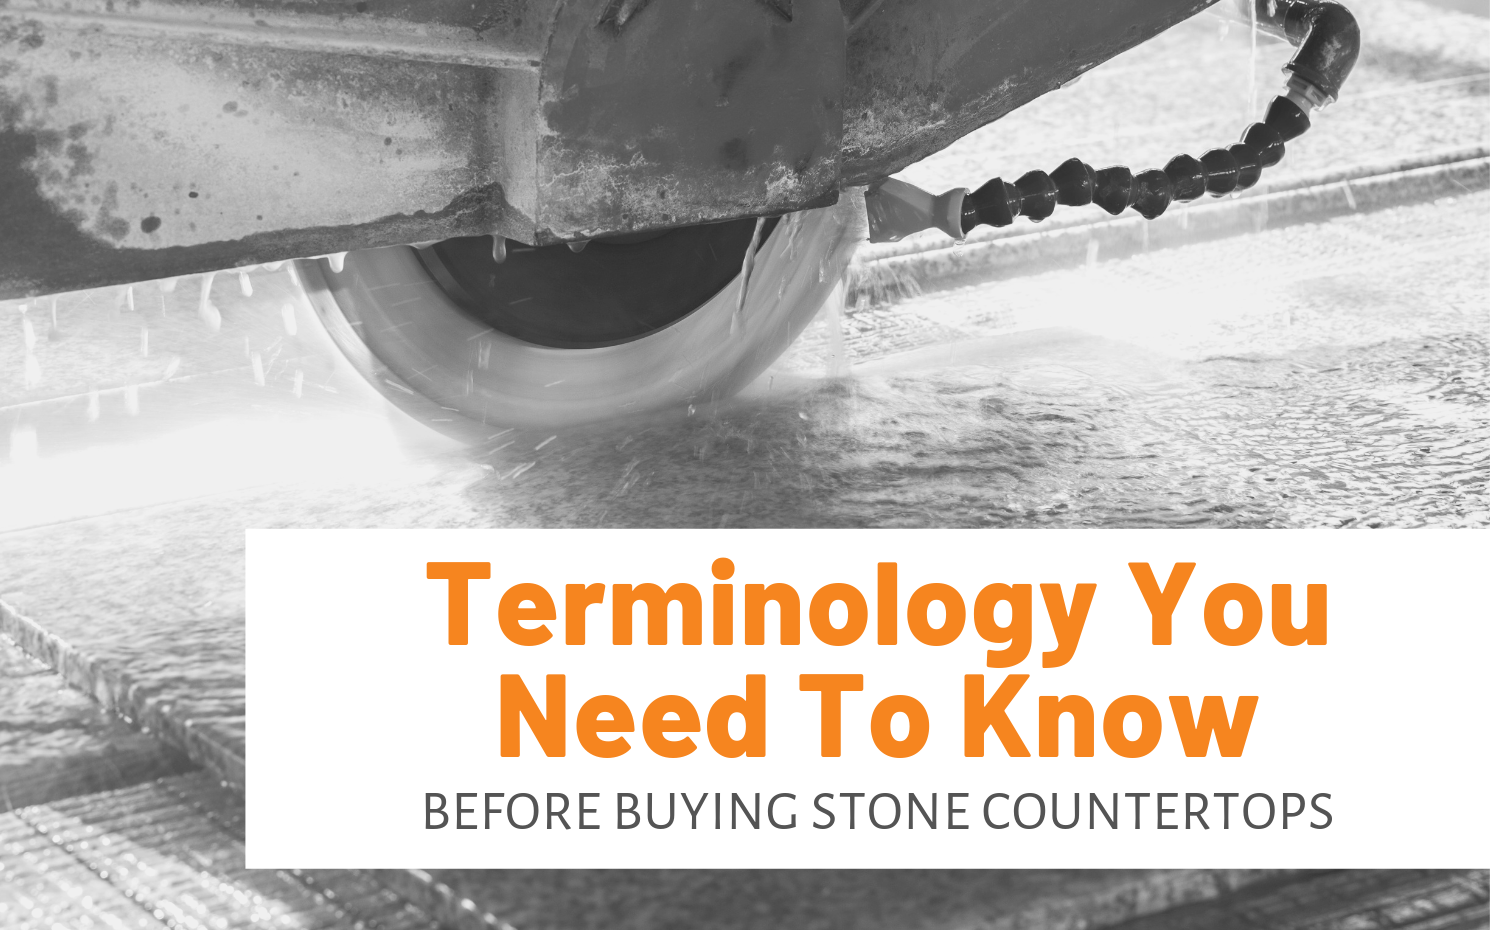 """Featured image for """"Terminology You Need To Know Before Buying Stone Countertops"""" blog post"""